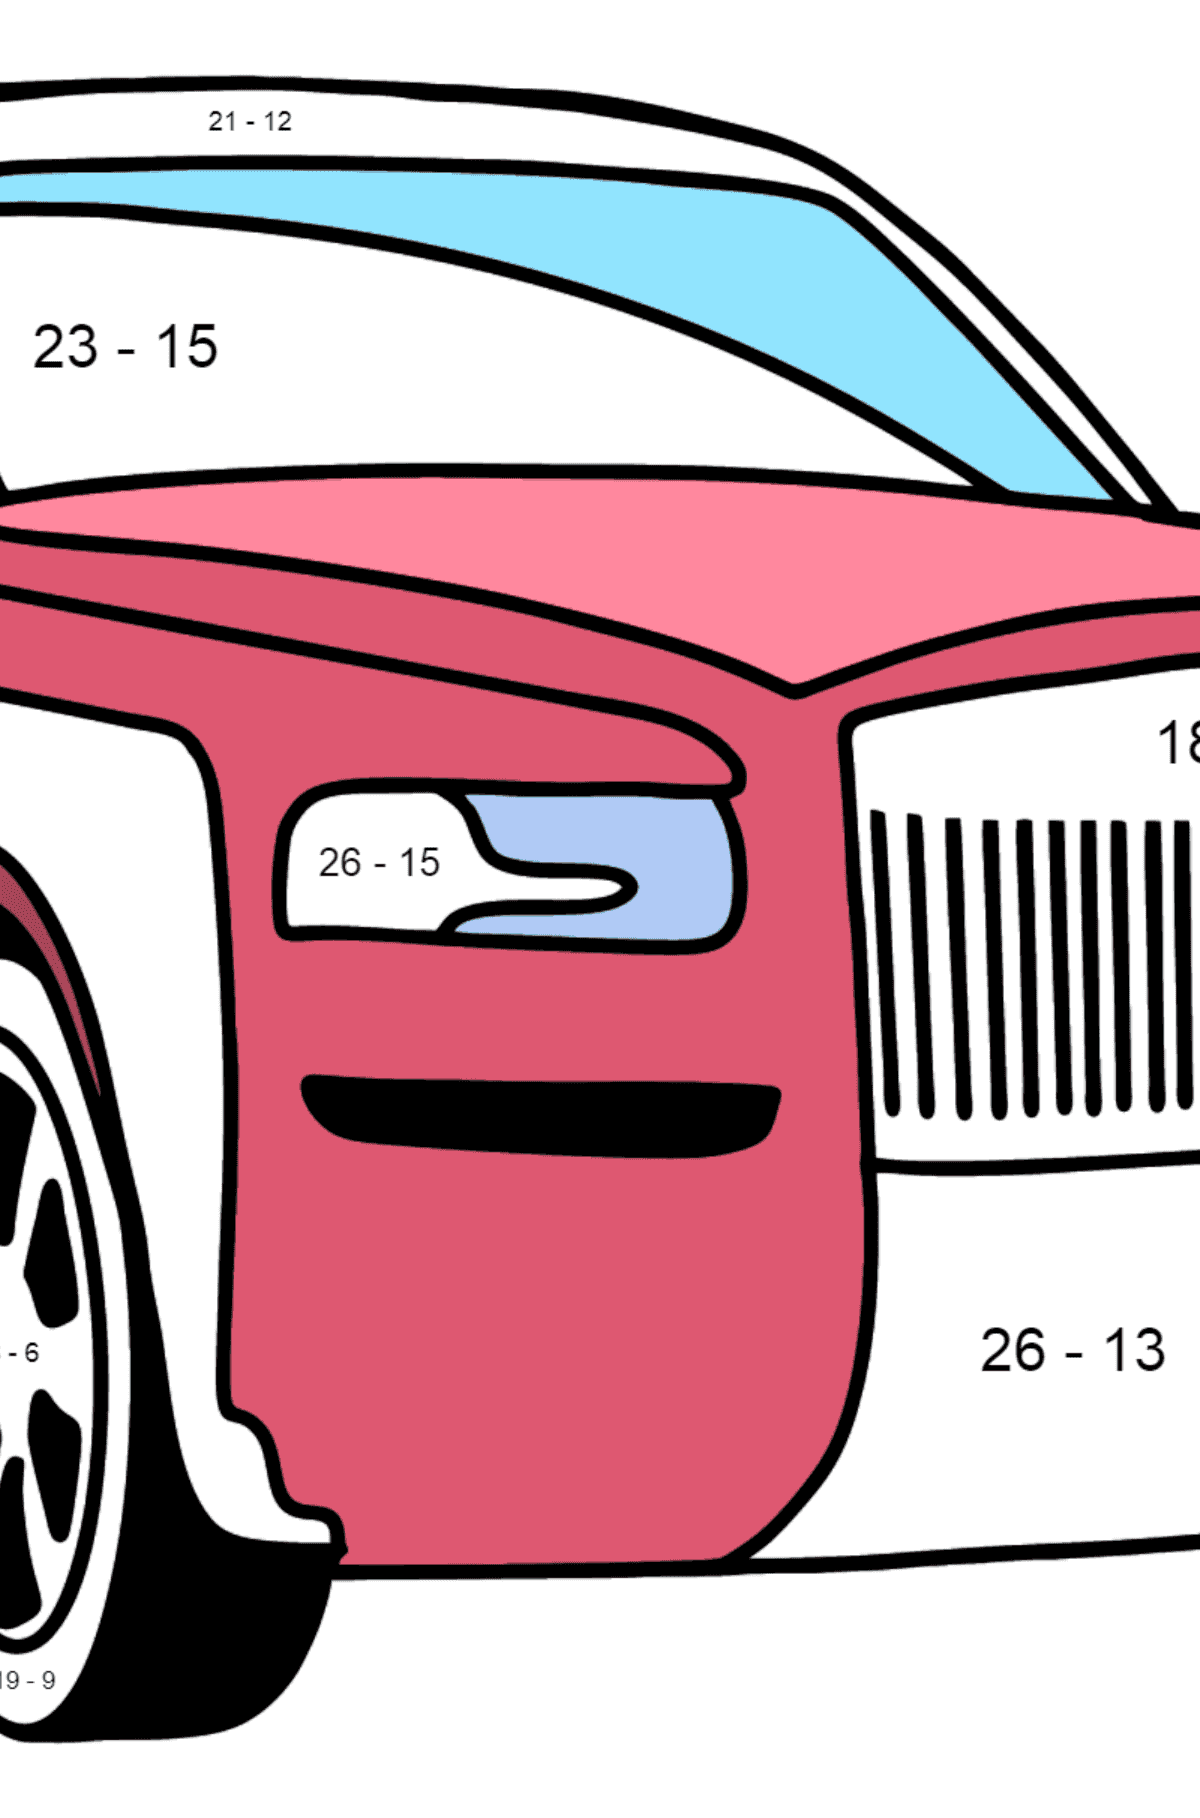 Rolls Royce Cullinan Car coloring page - Math Coloring - Subtraction for Kids